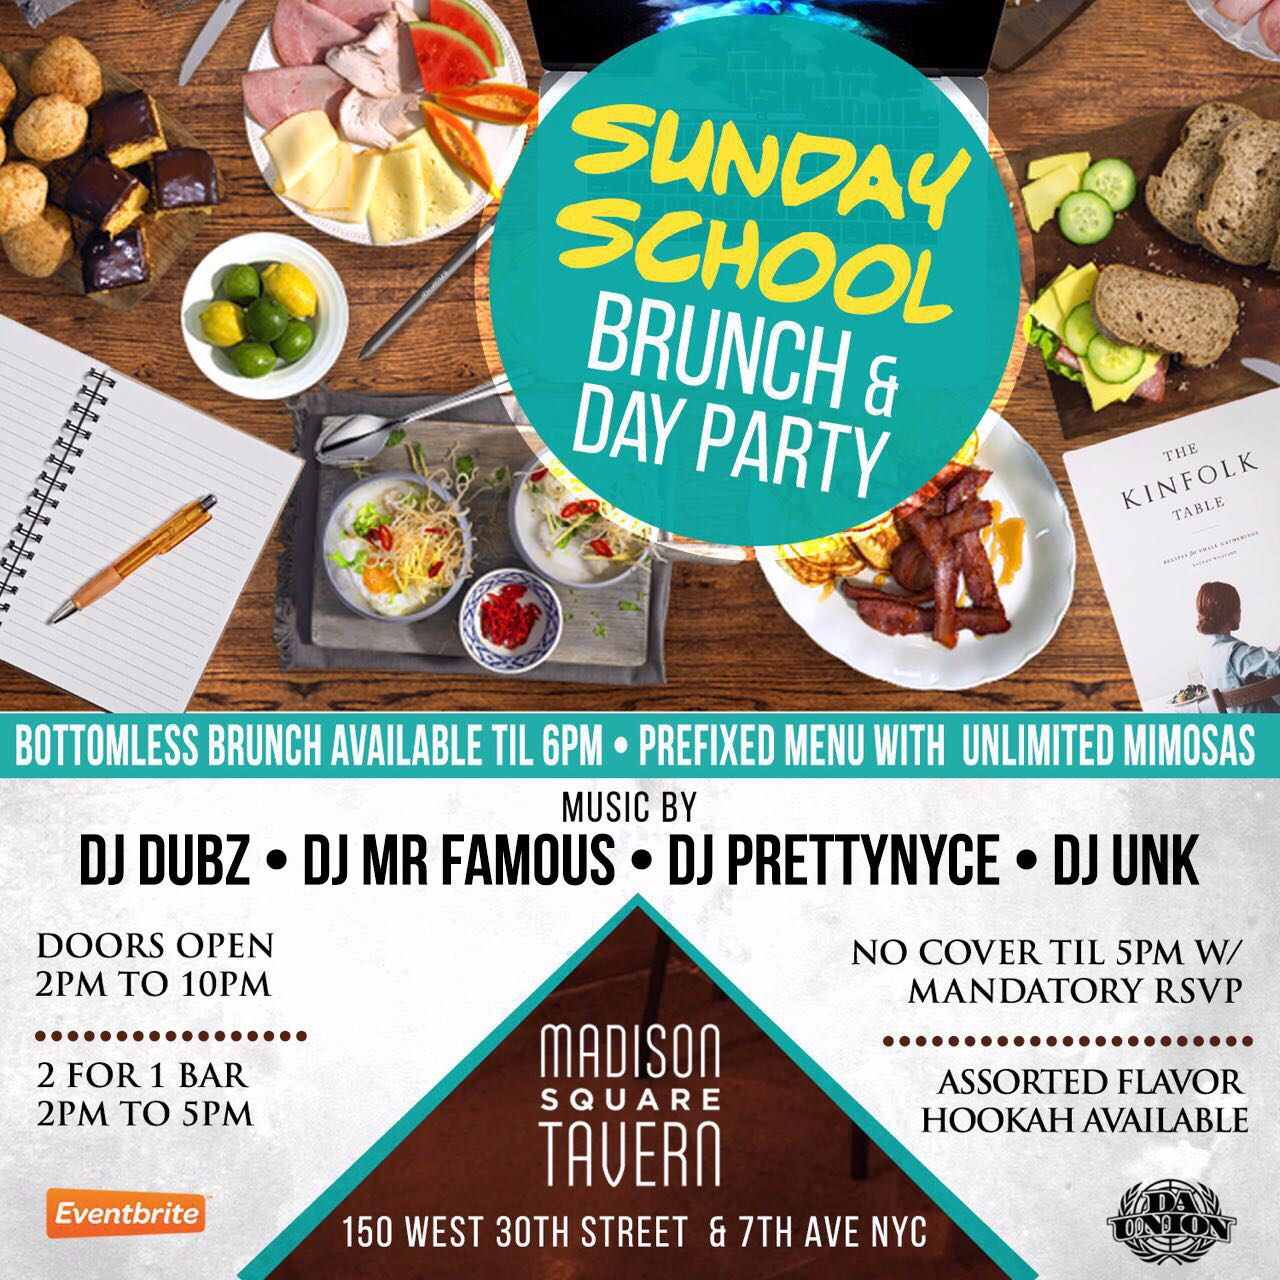 sunday school brunch day party madison square tavern tickets event details sunday school